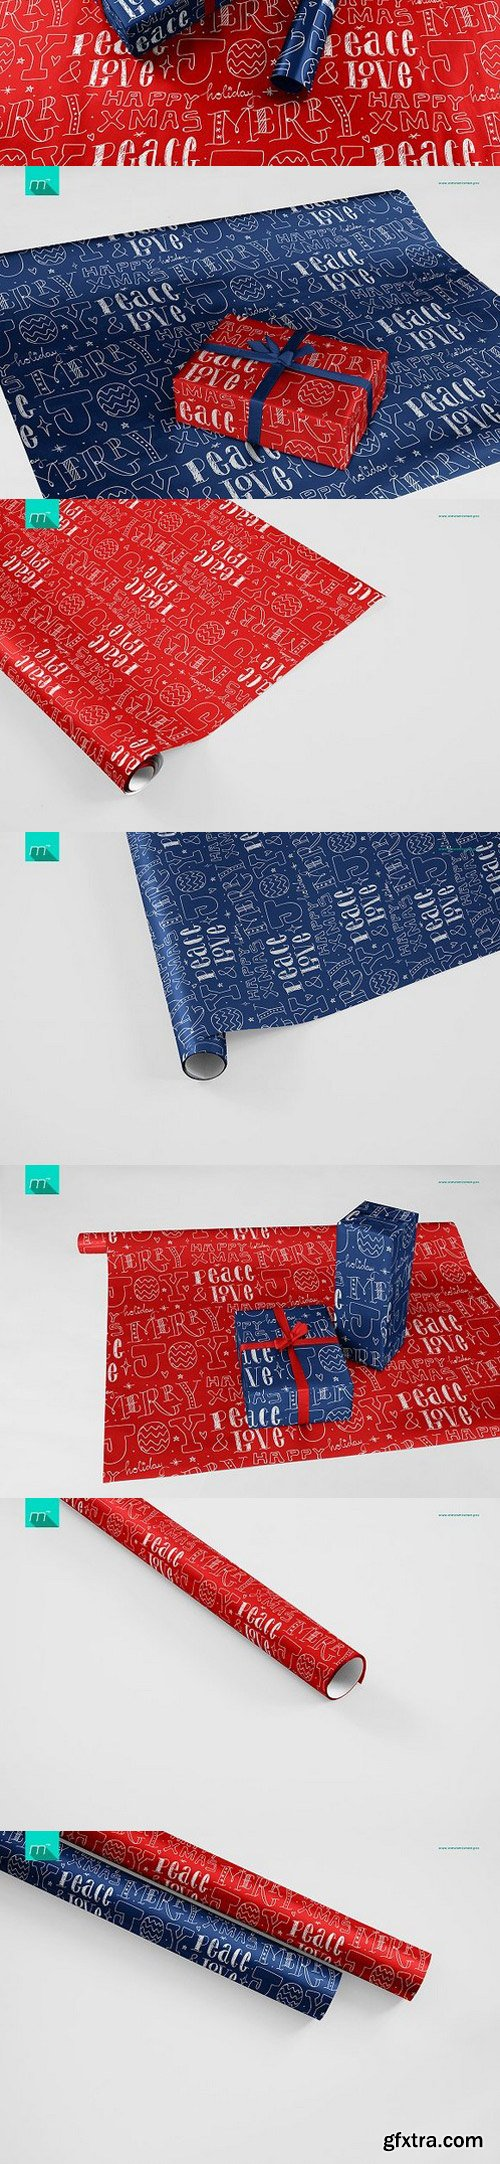 CM - Gift Wrapping Paper Mock-up 1100717